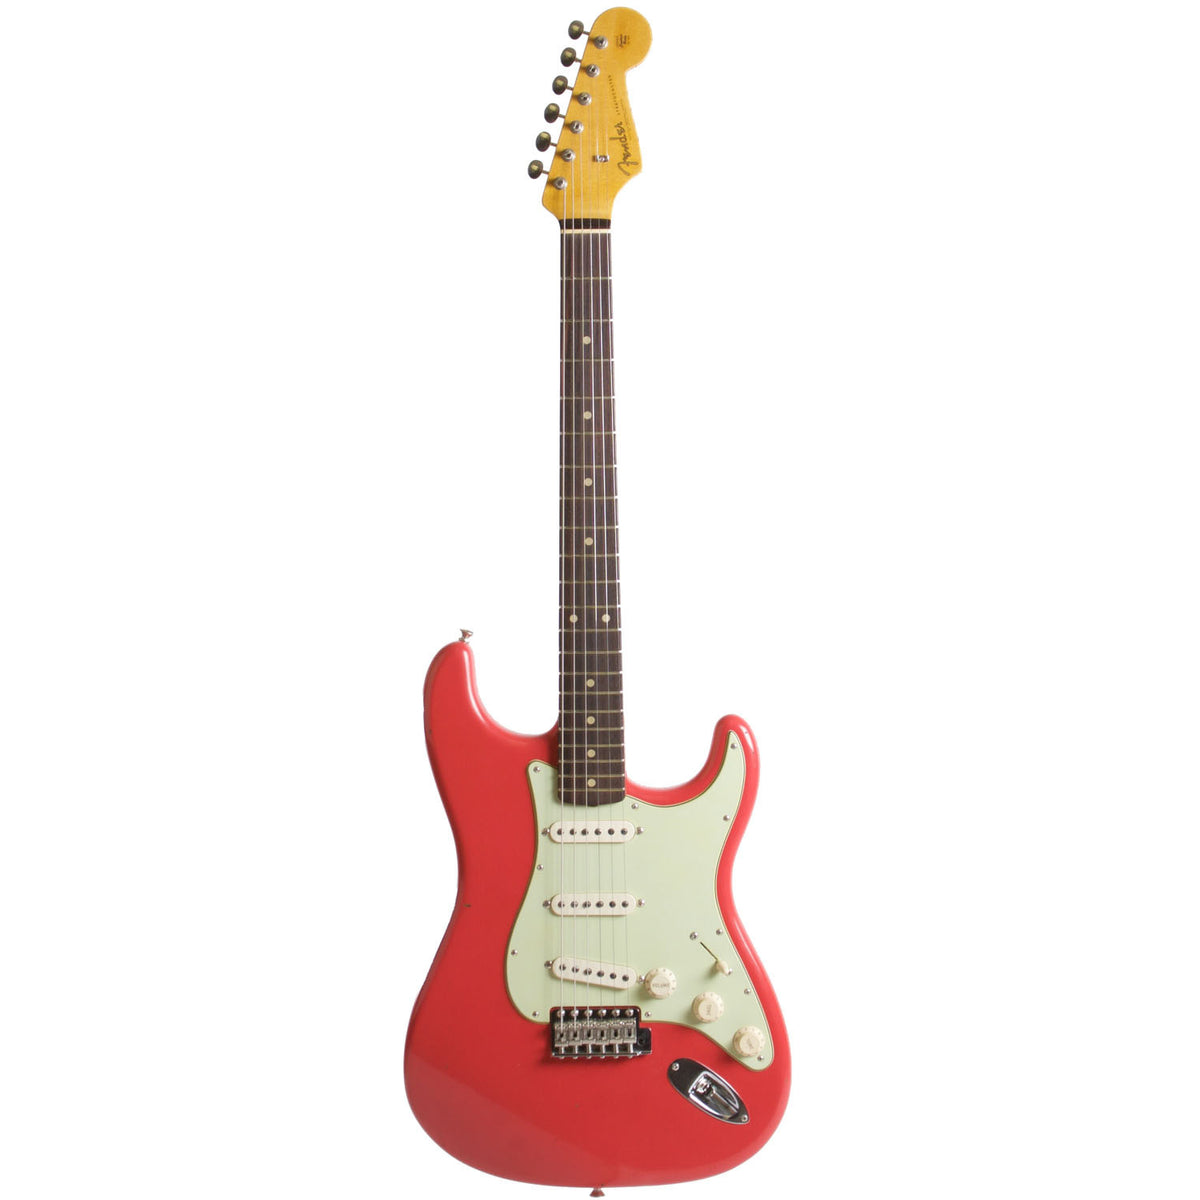 2015 Fender Custom Shop Rocking Dog '62 Stratocaster Fiesta Red - Garrett Park Guitars  - 3